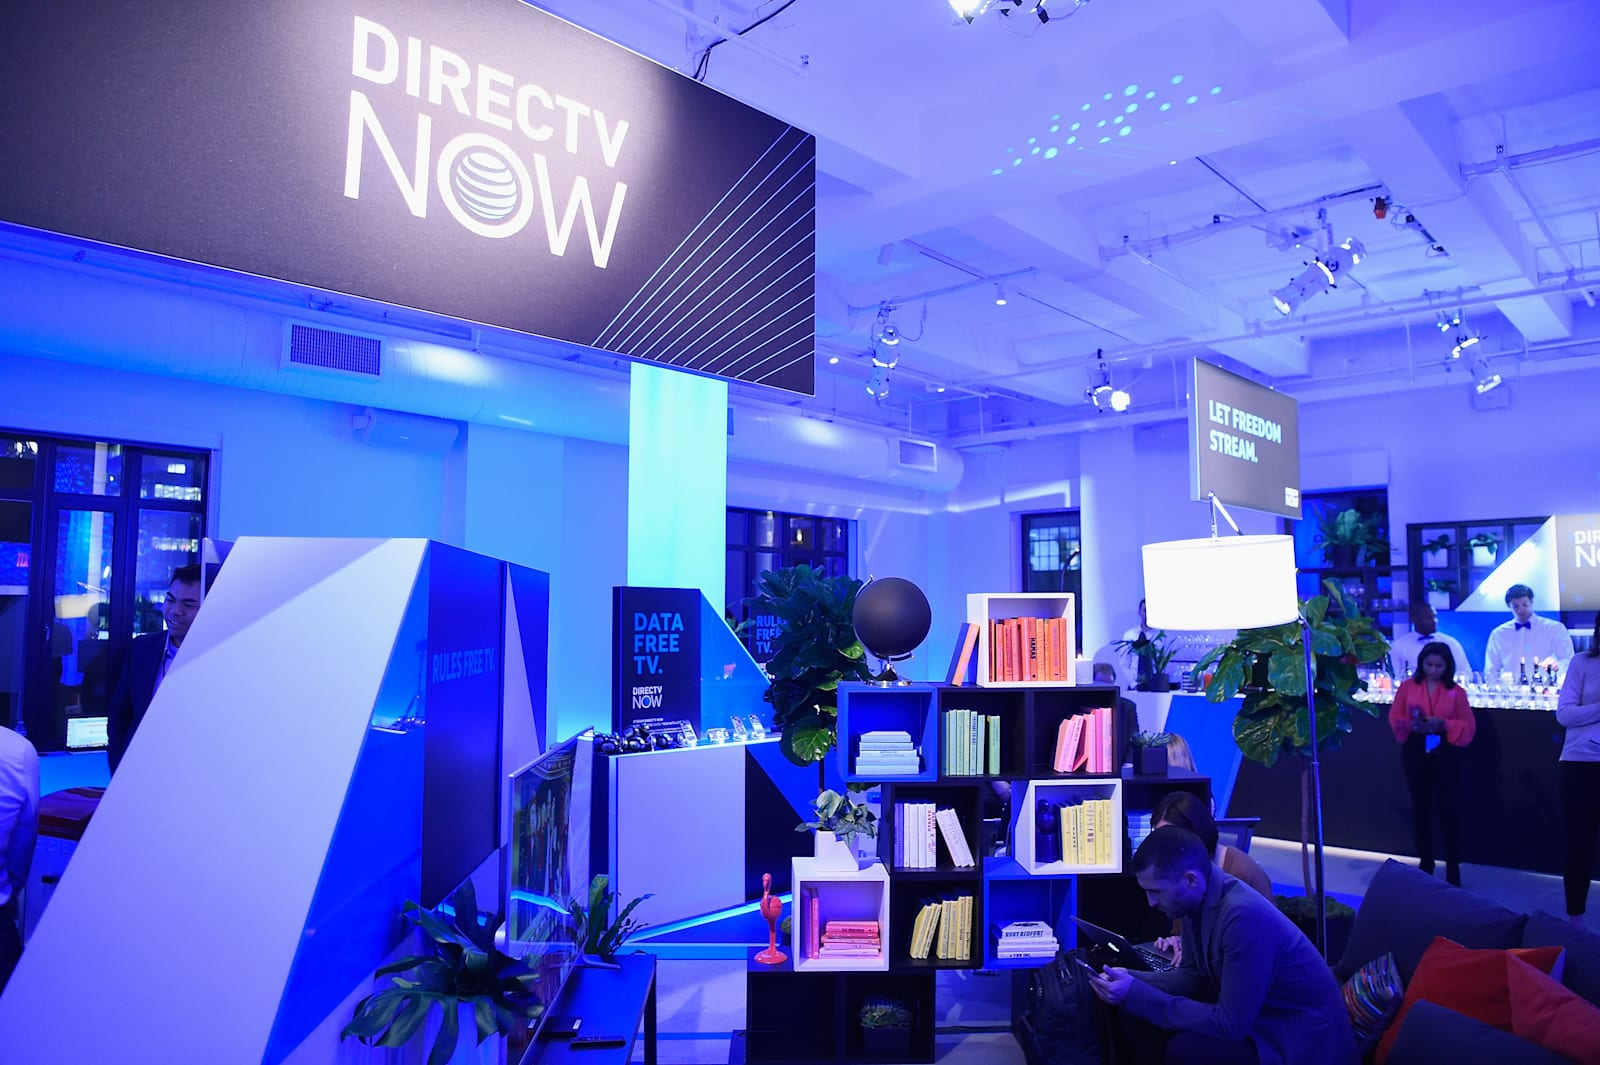 AT&T gives new DirecTV Now subscribers a year of HBO